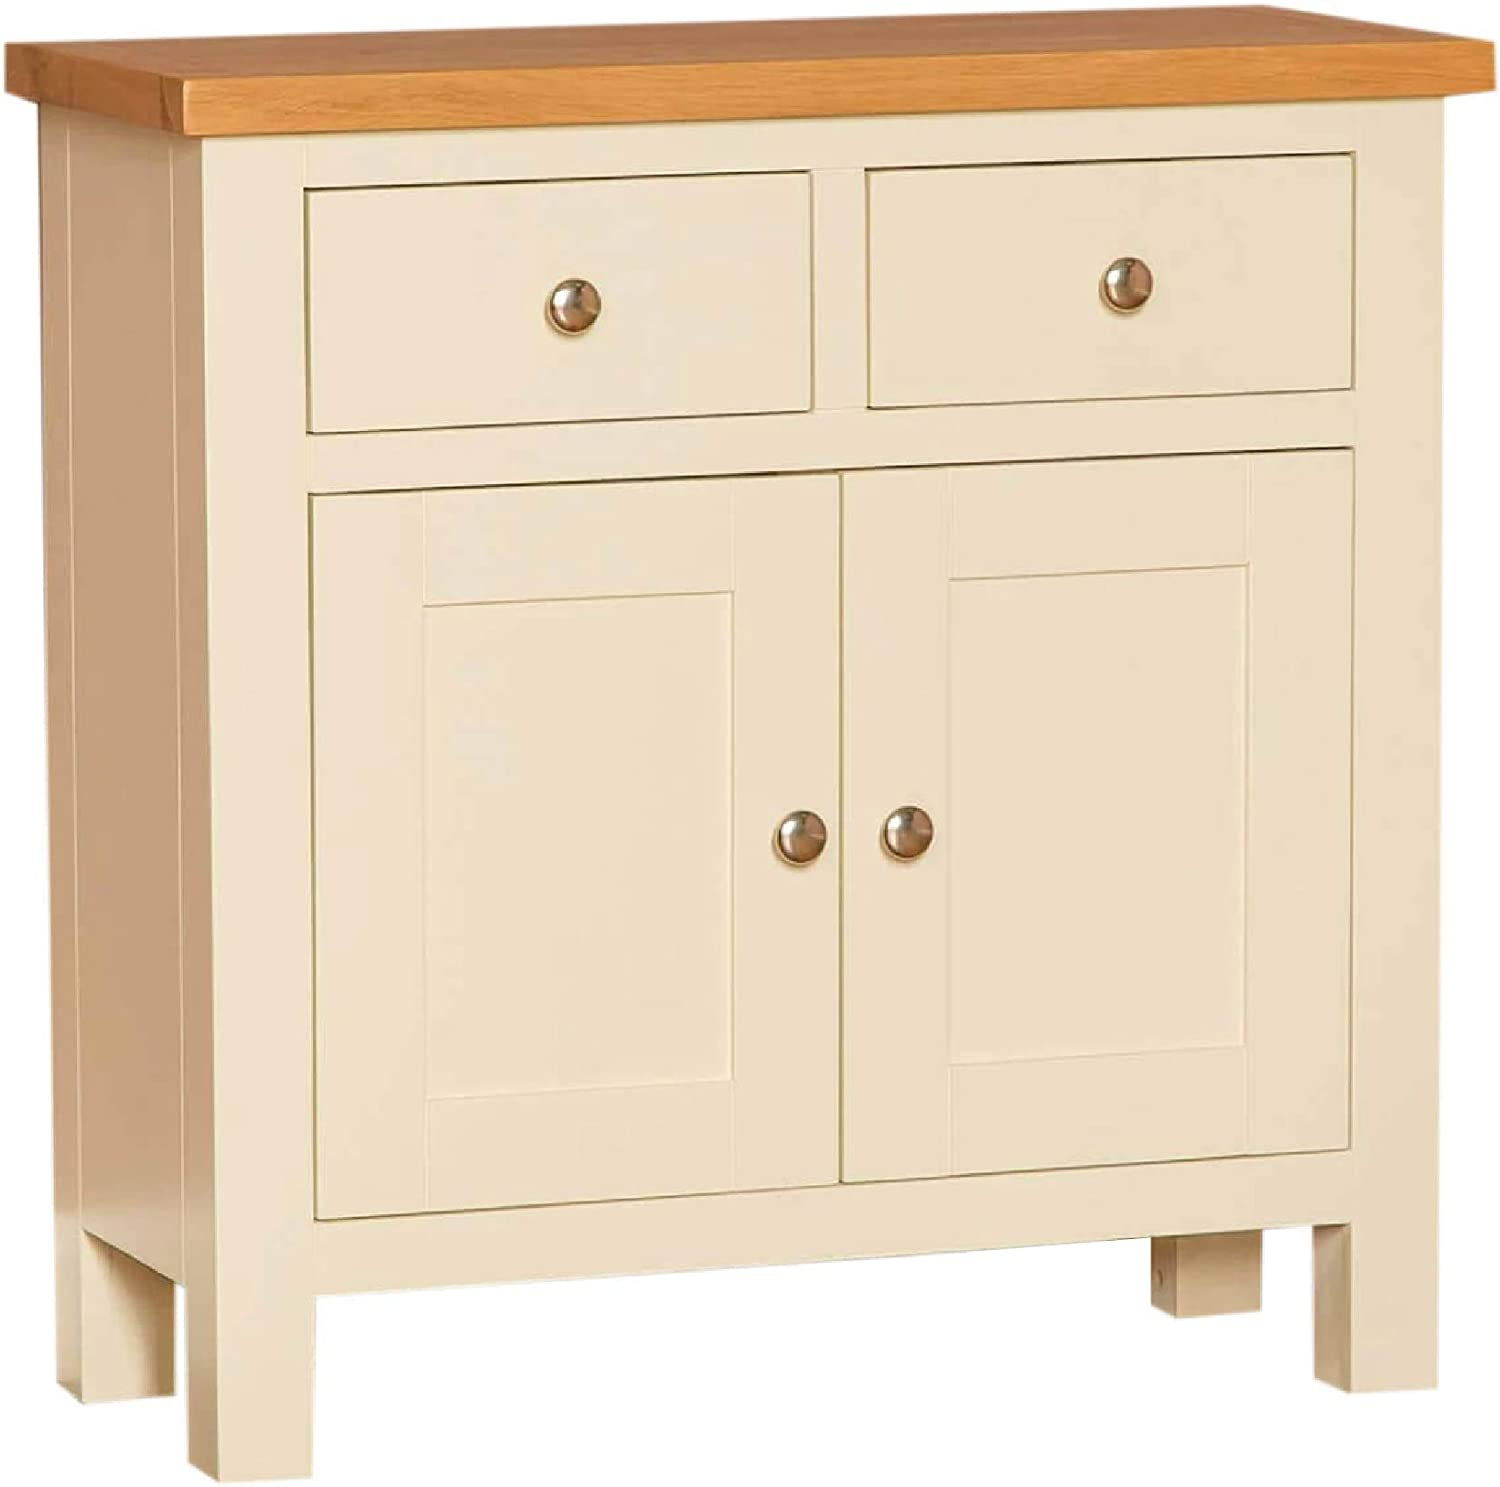 Farrow Cream Mini Sideboard Storage Cabinet With Drawers Small Painted Solid Wooden Cupboard With Shelf For Dining Room Living Room Or Hallway Fully Assembled H 75cm W 75cm D 32cm Amazon Co Uk Kitchen Home